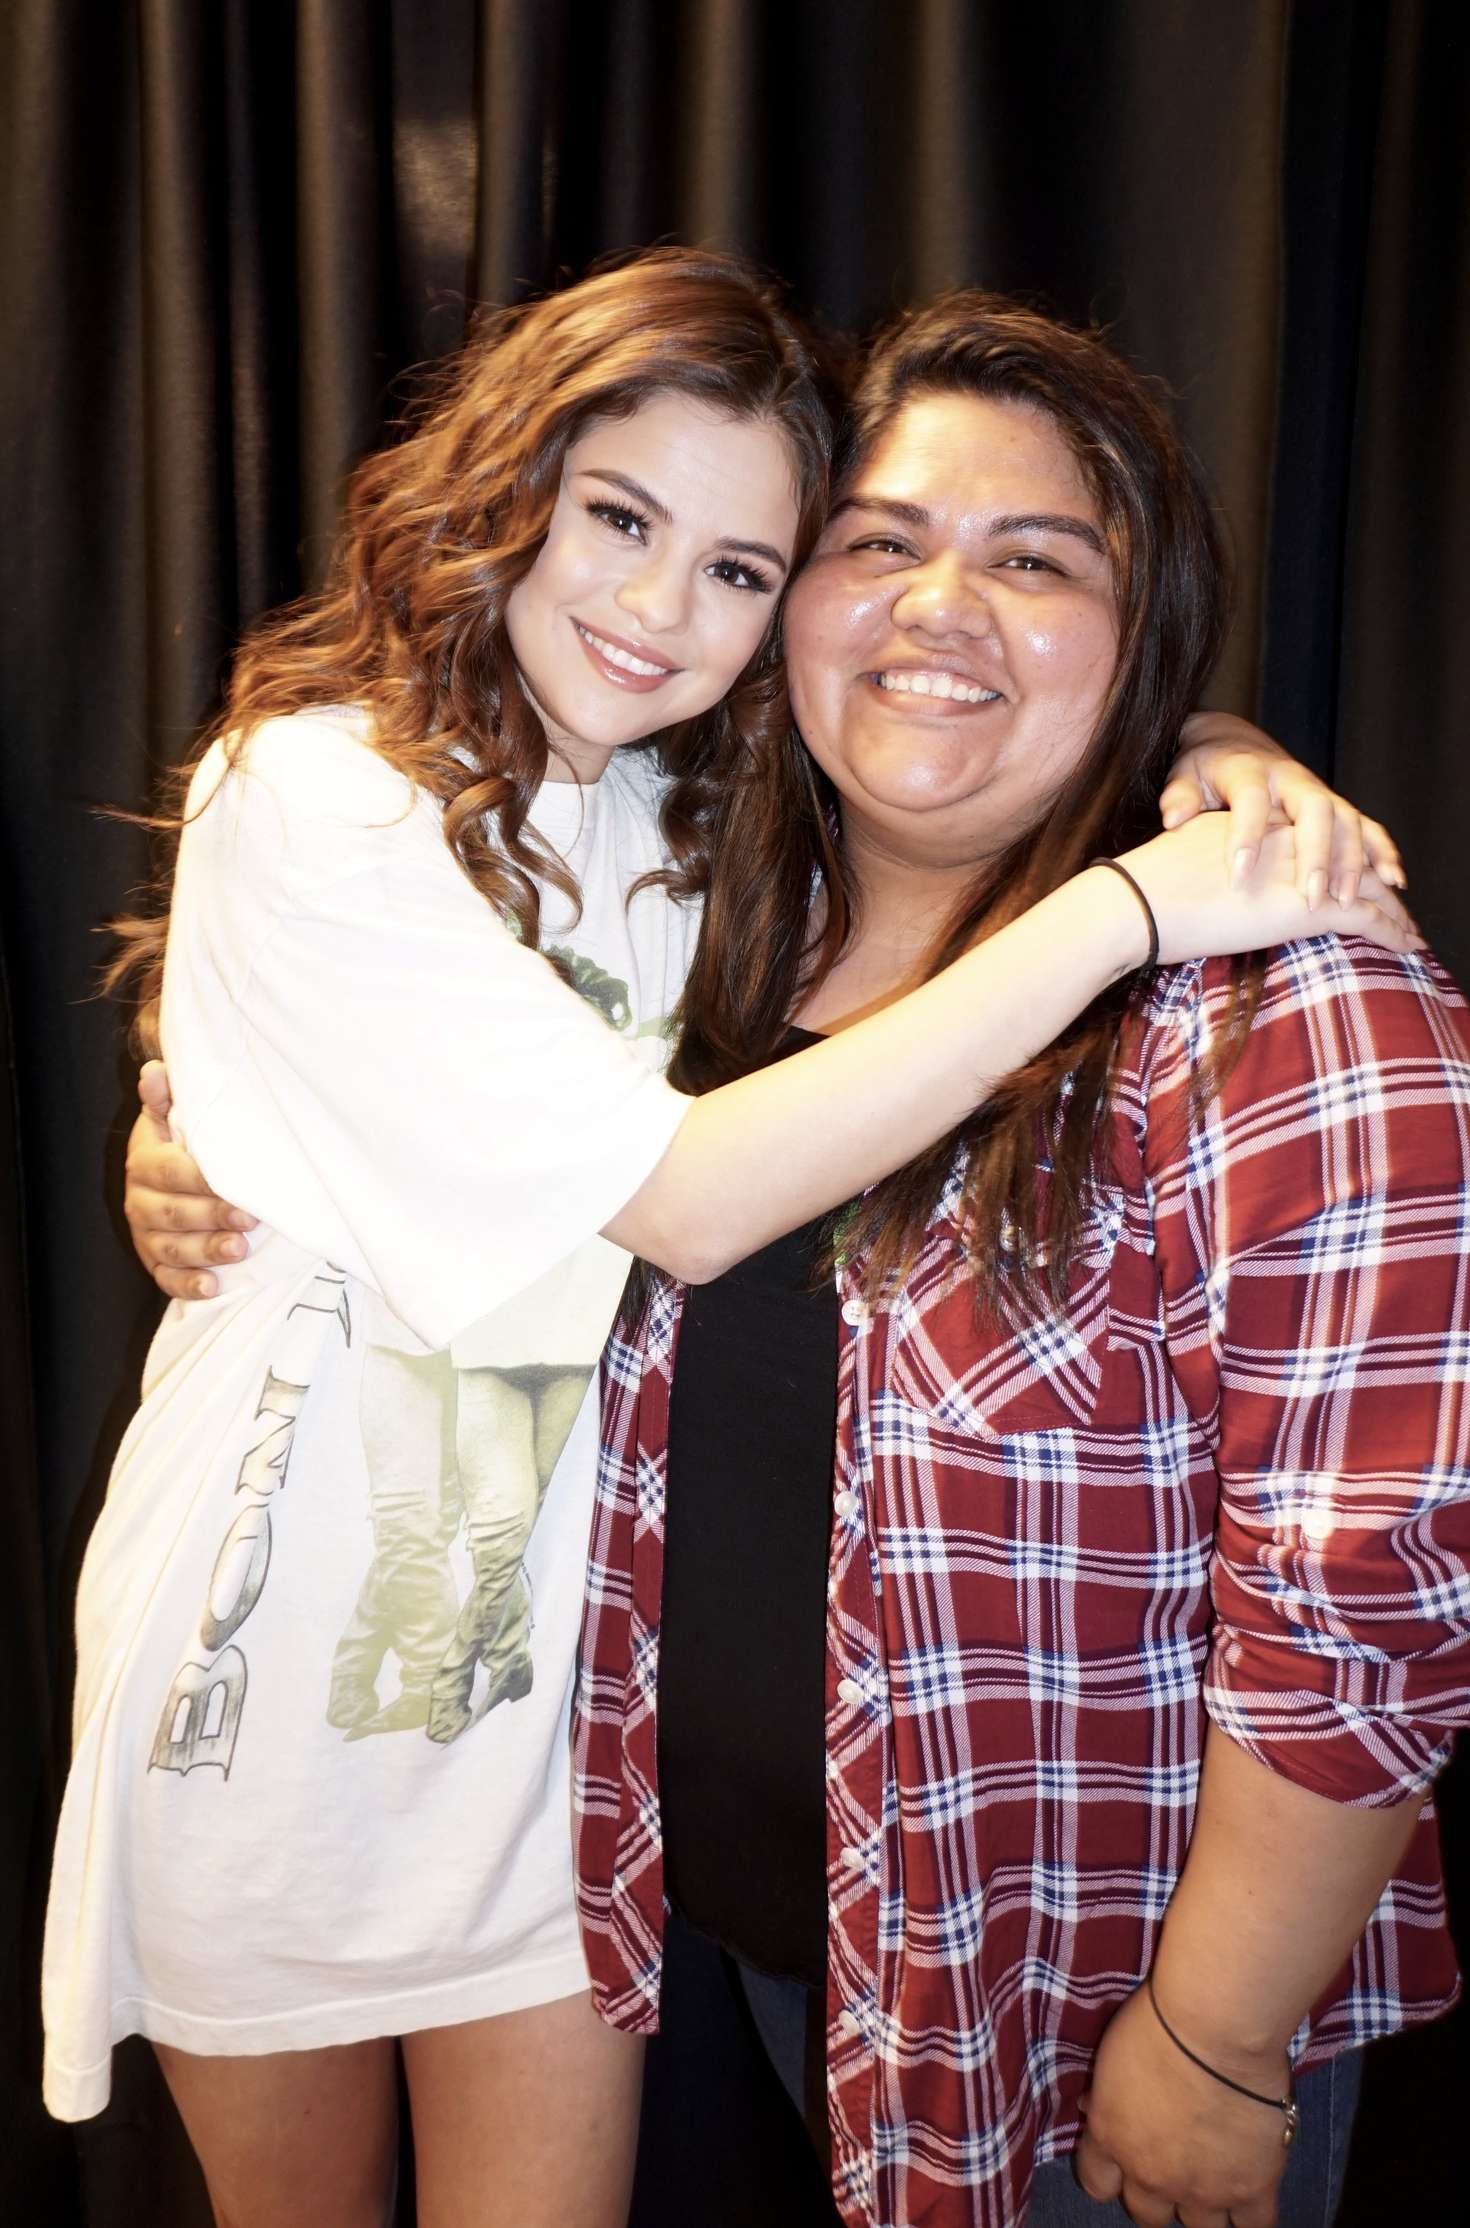 Selena Gomez Meet And Greet At The Revival World Tour In Sacramento